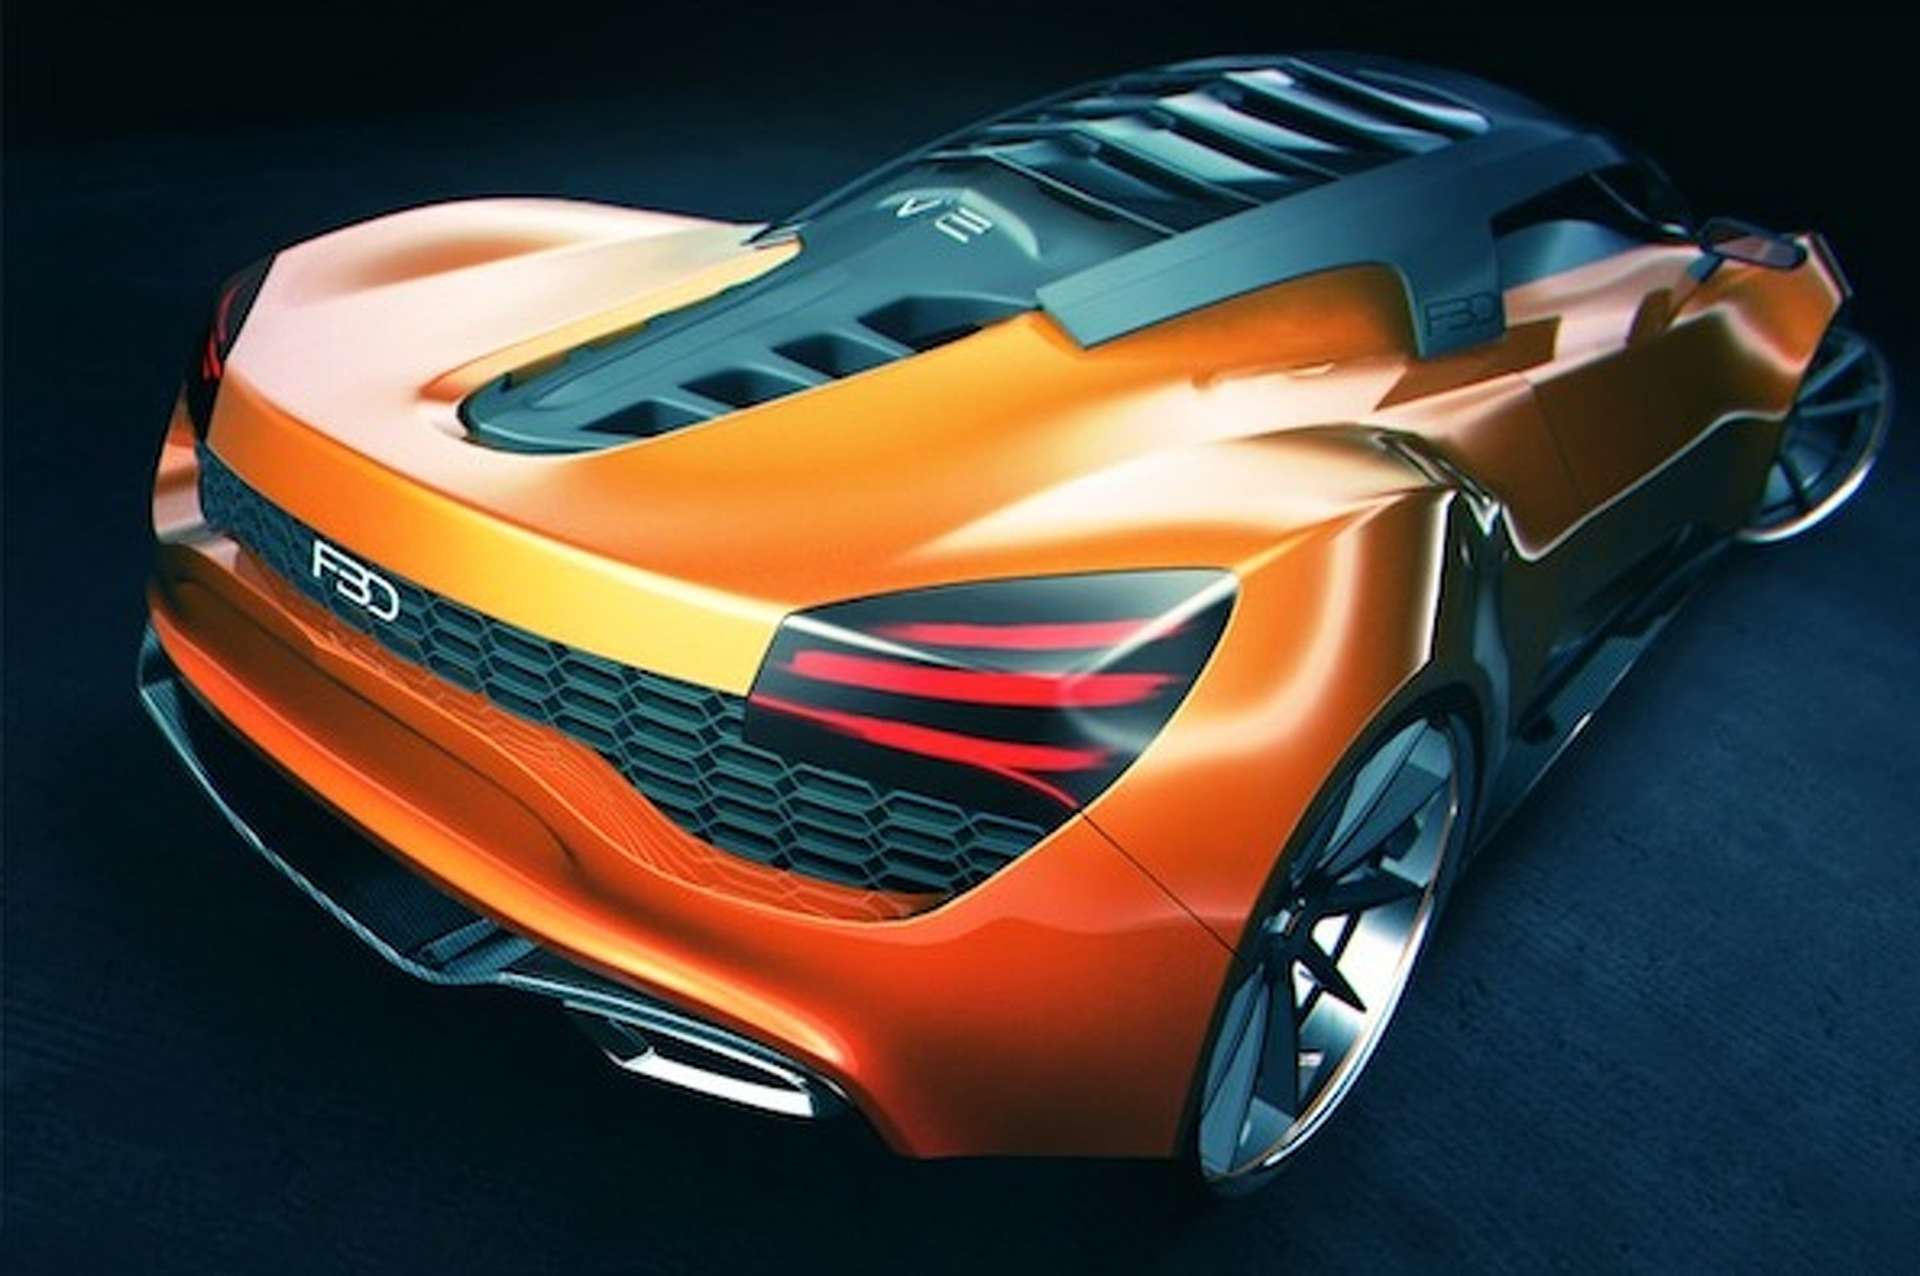 Cheetah-R Concept: Focused, Confident and Built for Speed